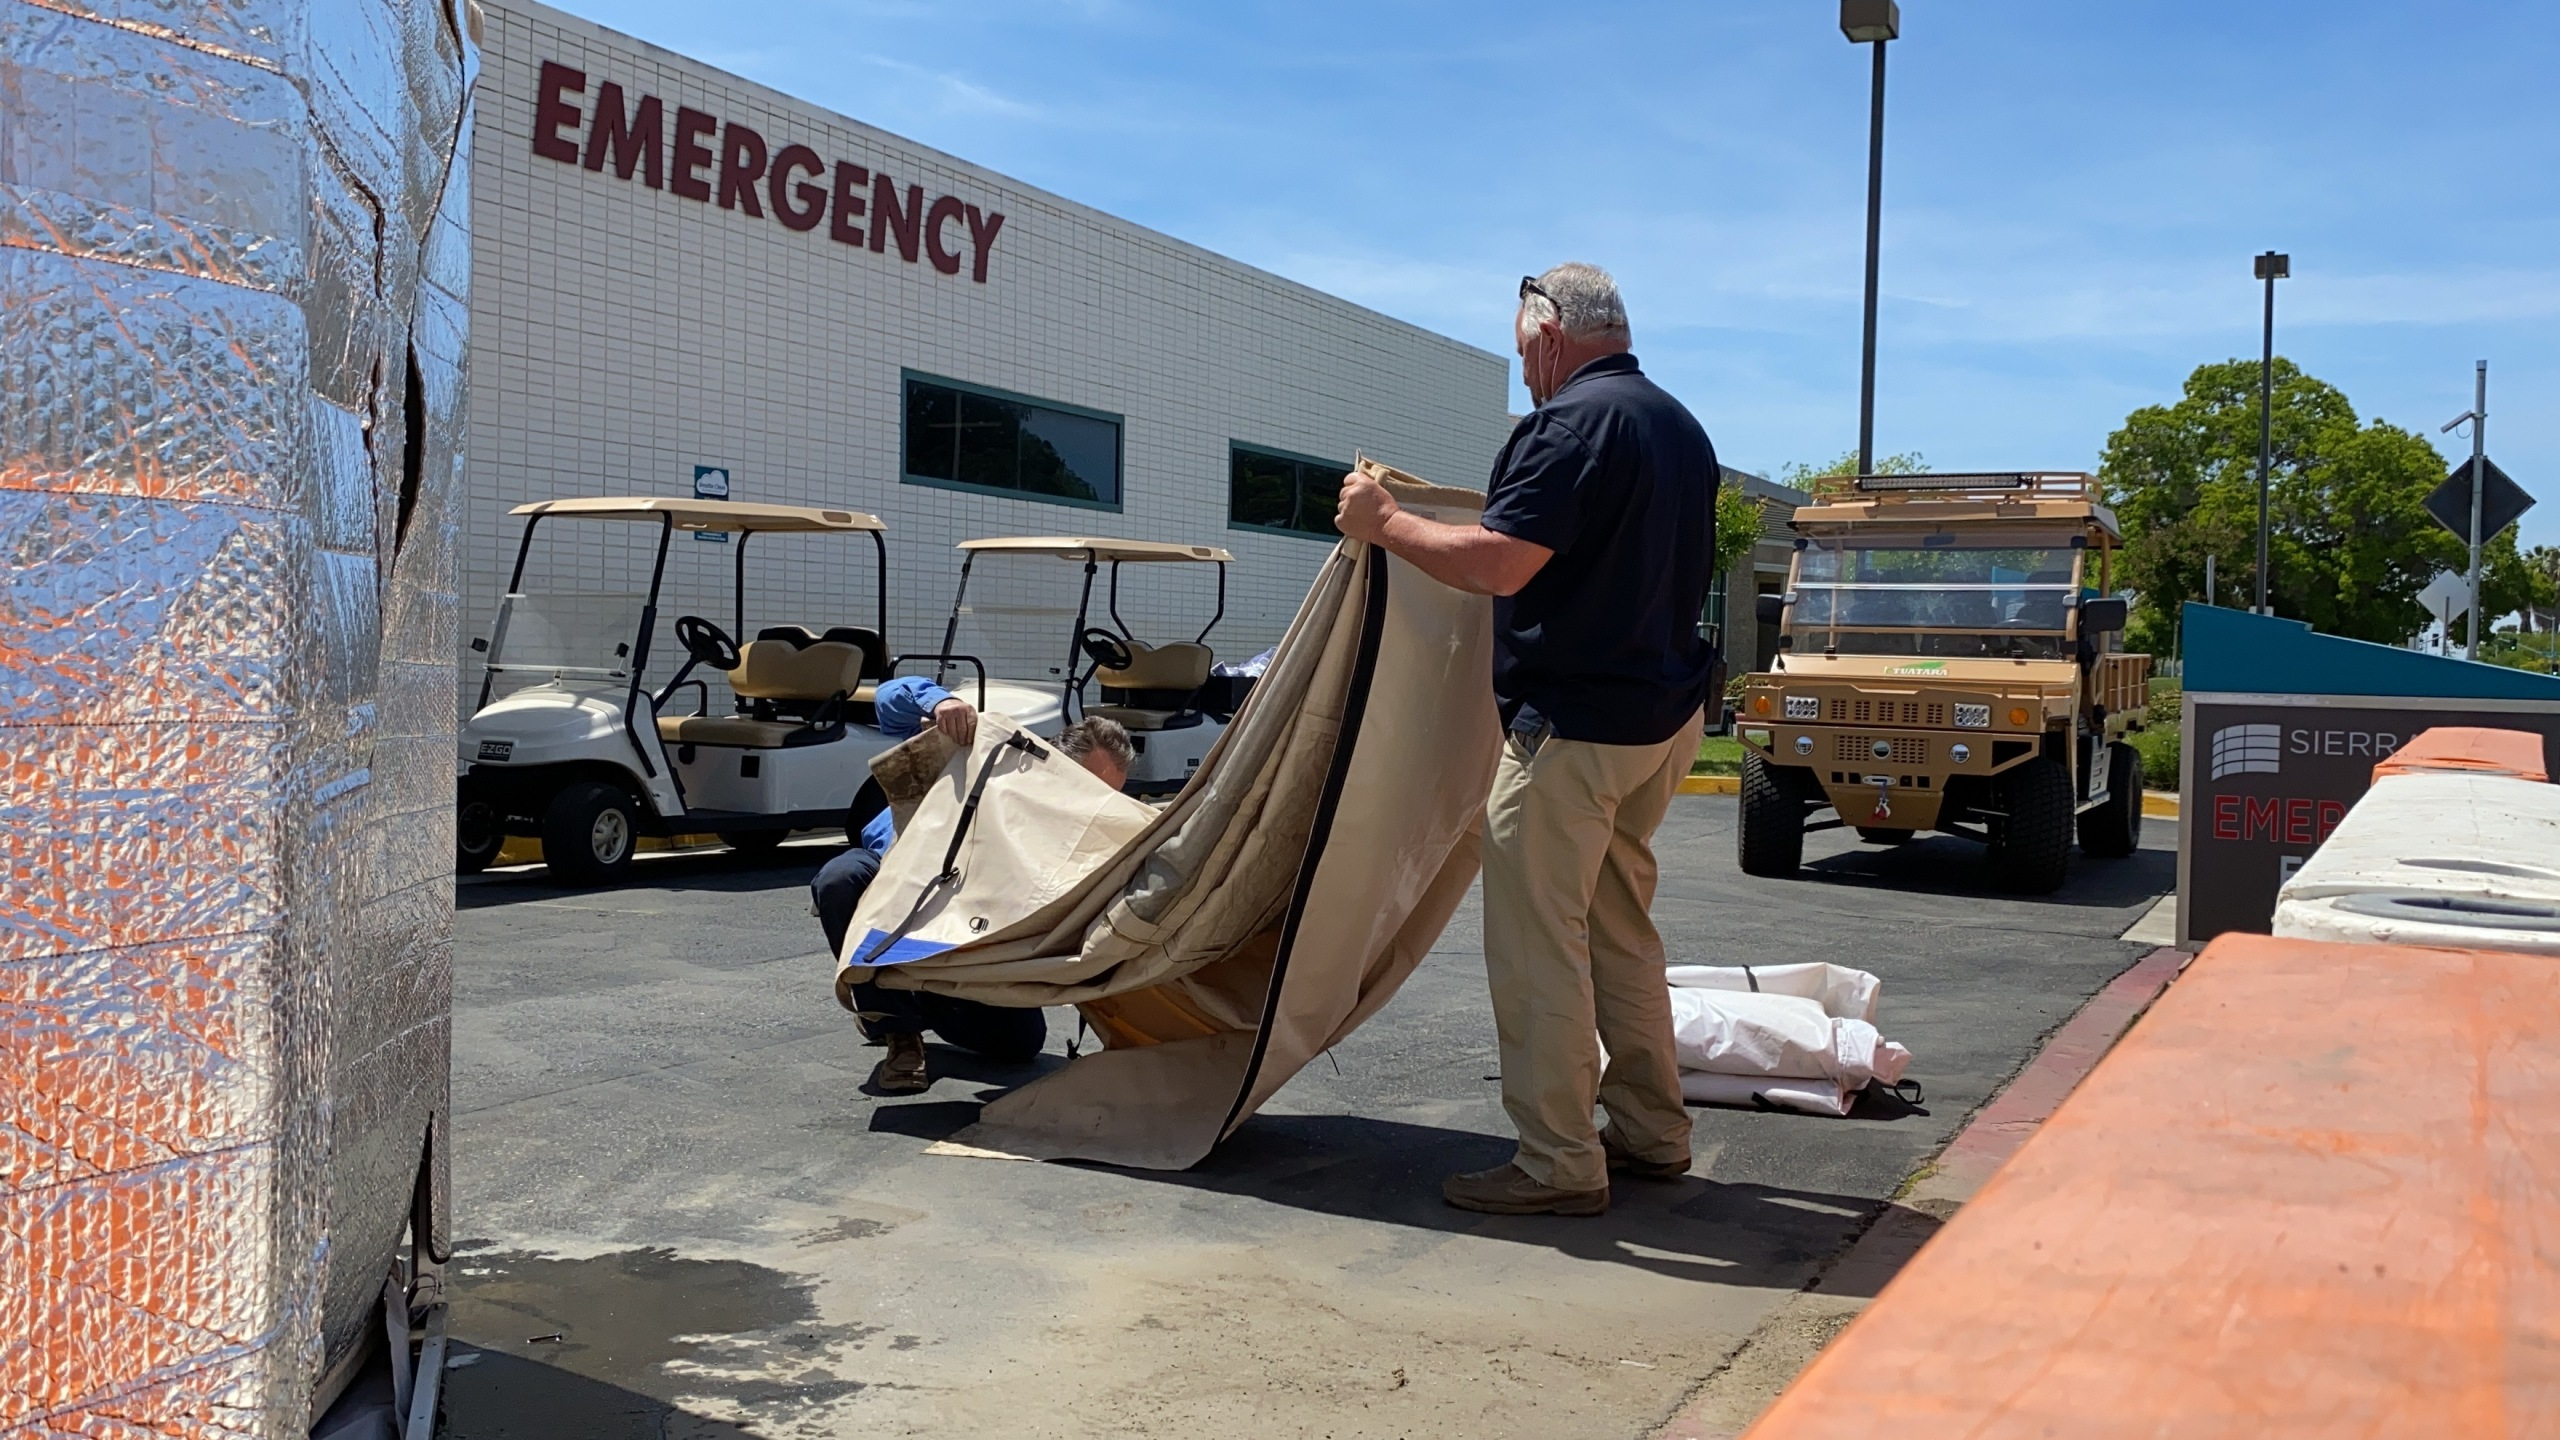 Emergency-use COVID-19 tents taken down at Porterville's Sierra View Medical Center